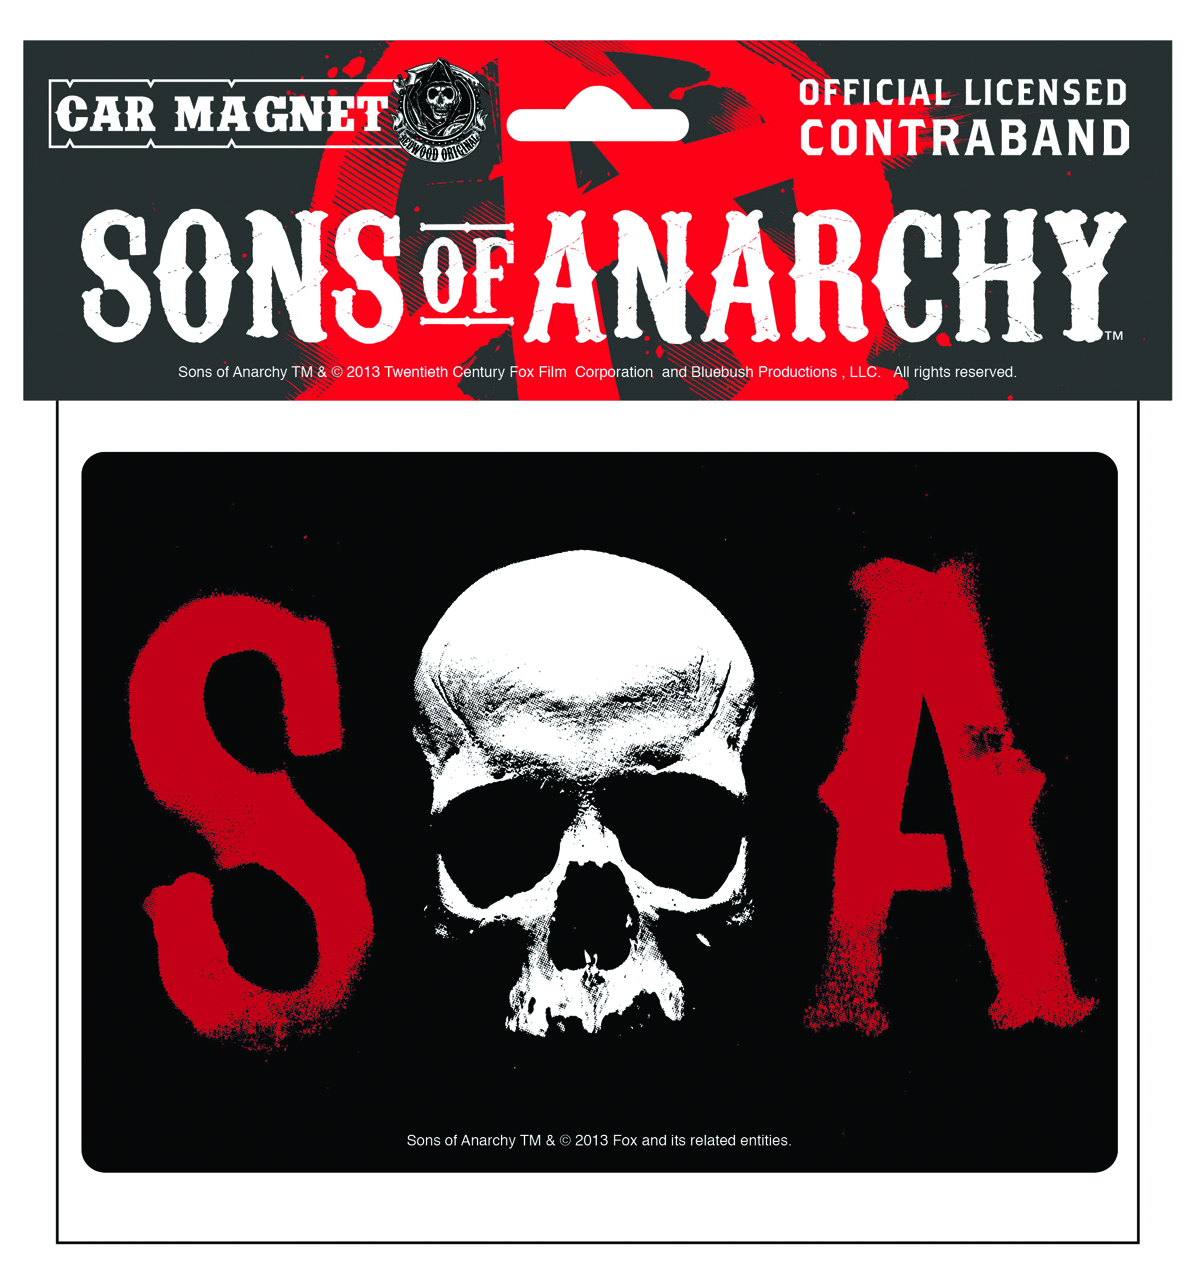 SONS OF ANARCHY CAR MAGNET